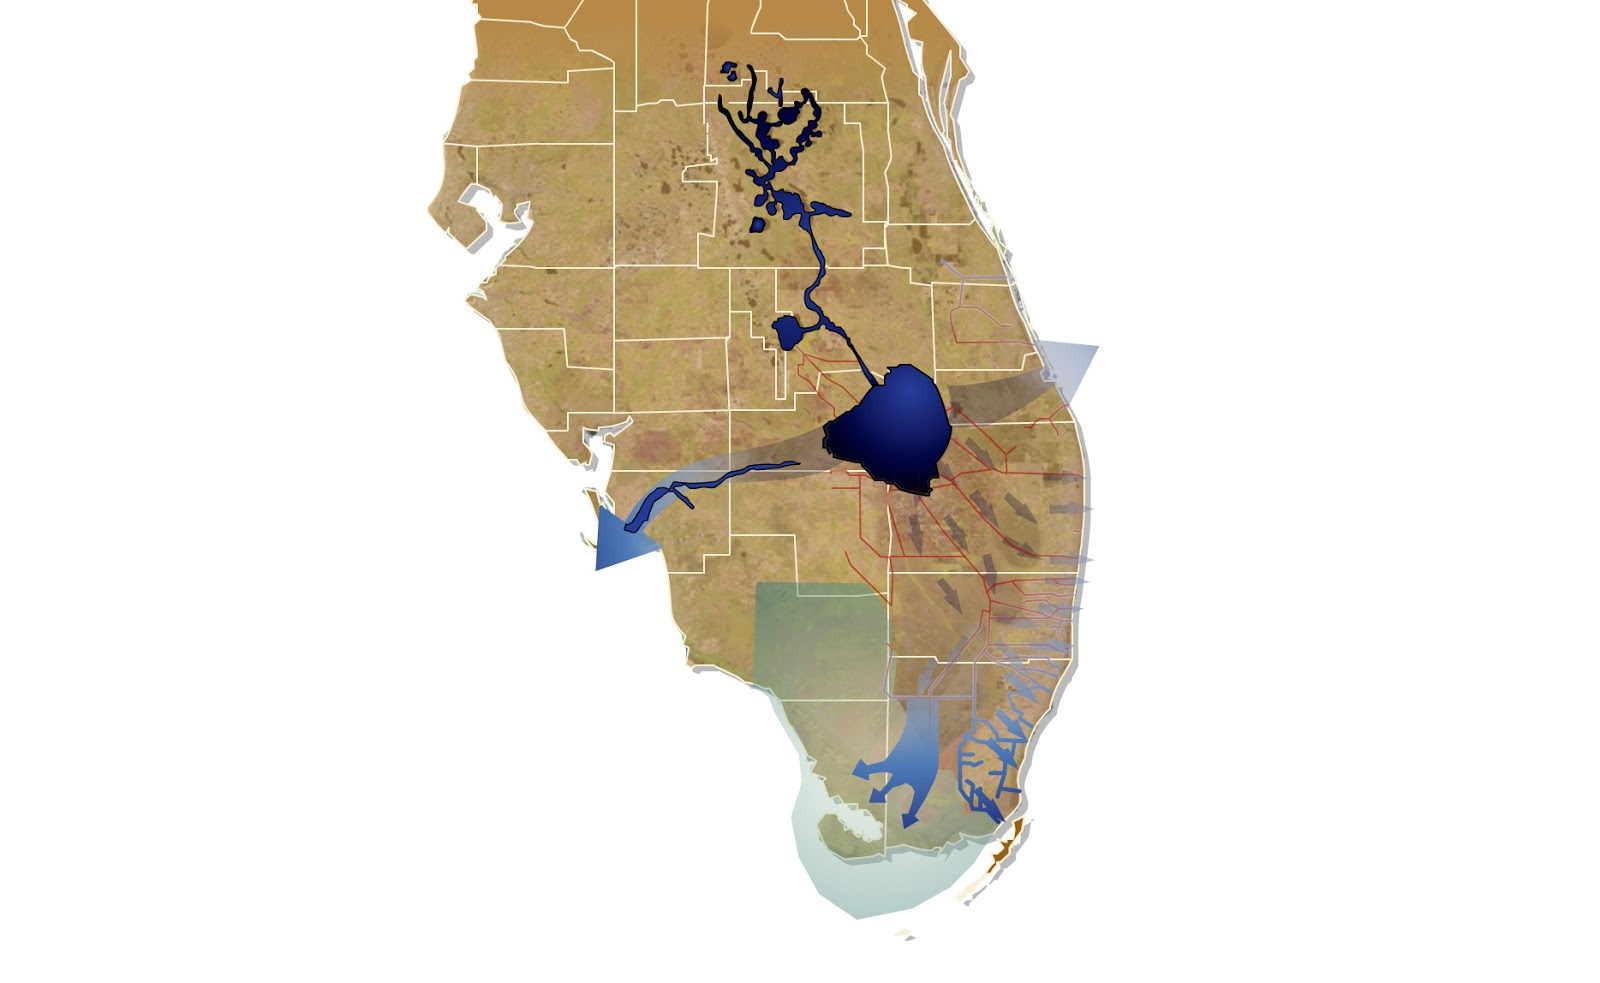 this map illustrates how the cs f project disrupted historic everglades water flows and created the current water management system